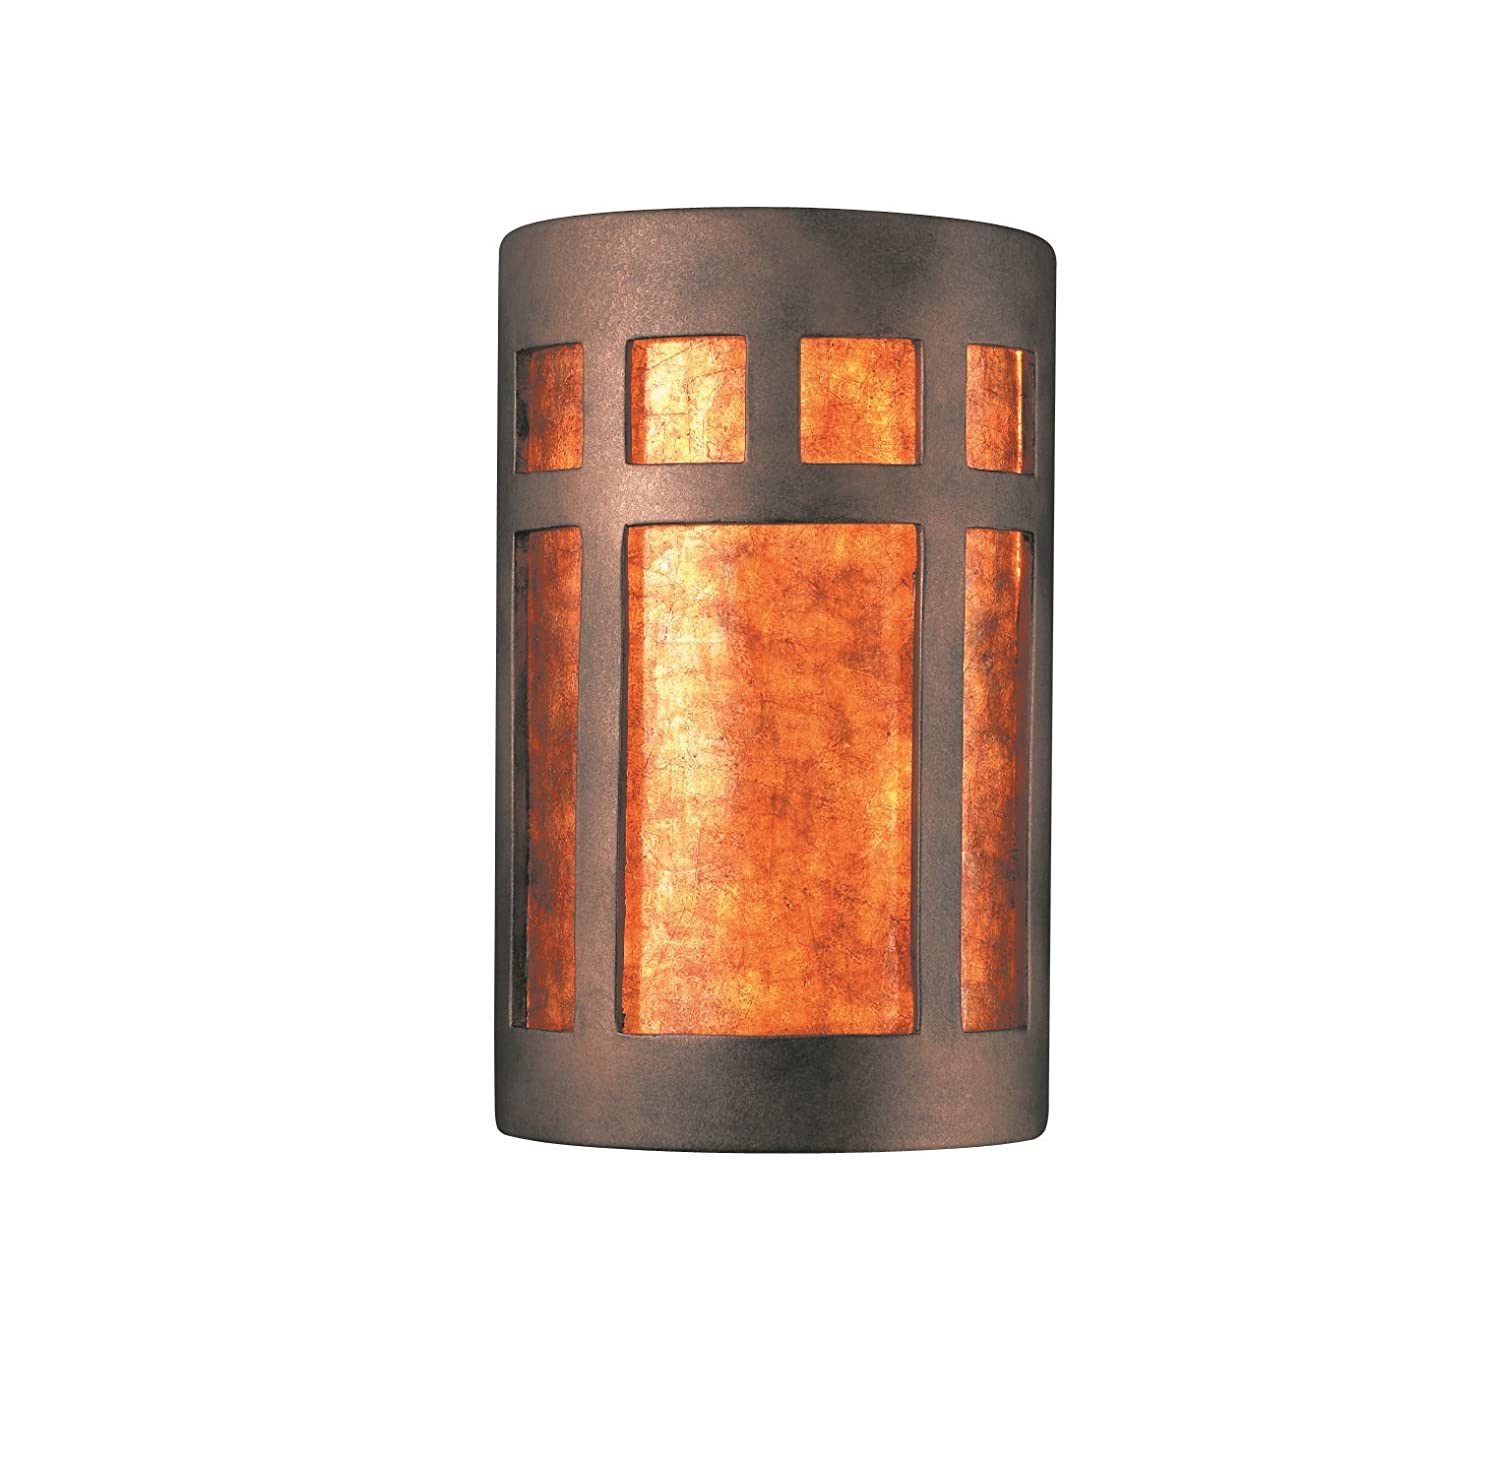 White Justice Design Group Lighting CER-7355-BIS Wall Sconce with Ceramic Bisque Shades